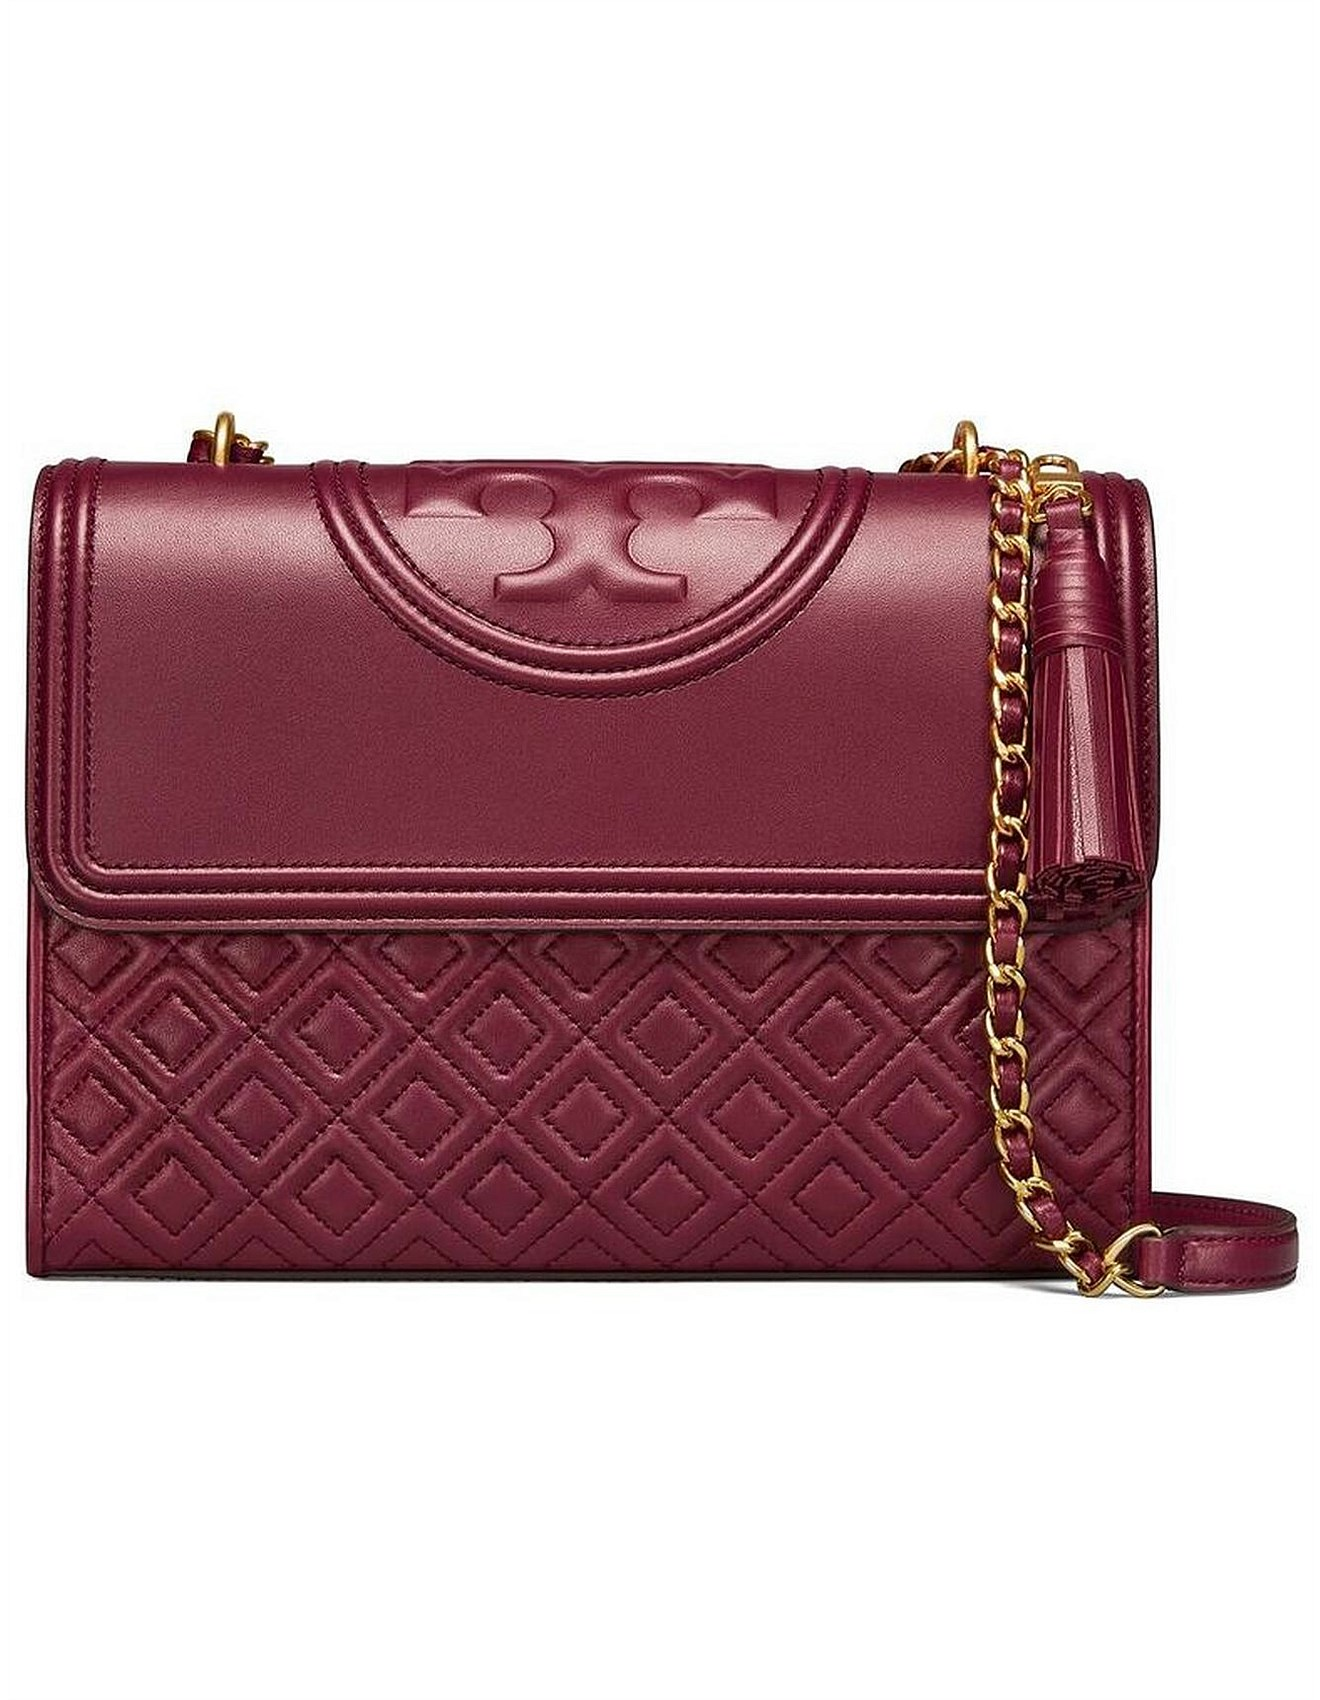 7fcda3607ce Tory Burch | Buy Tory Burch Perfume Australia | David Jones - FLEMING  CONVERTIBLE SHOULDER BAG